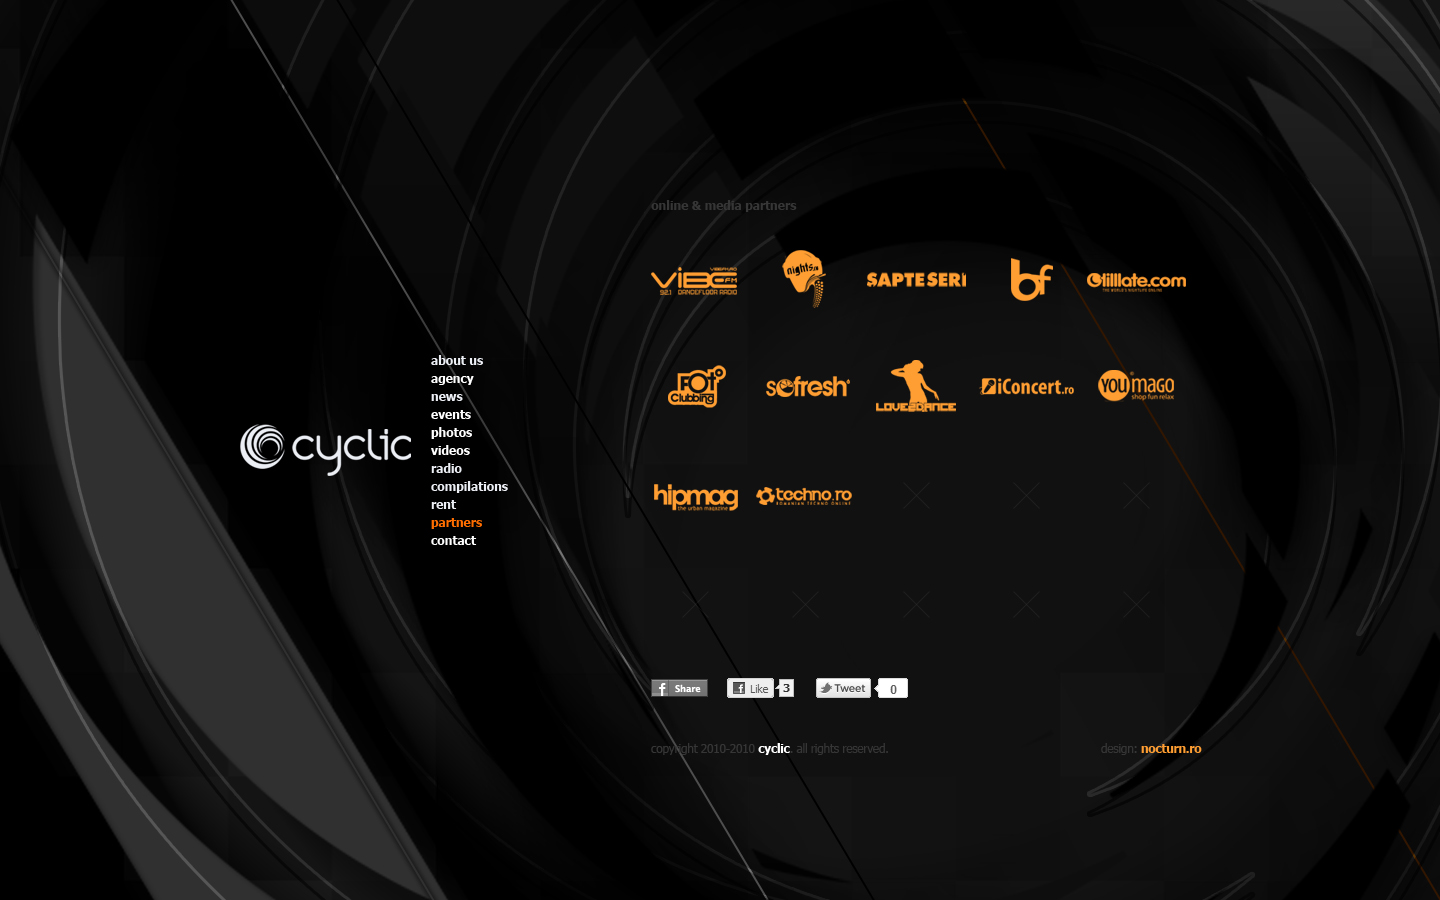 cyclic dj booking agency records label - partners - web website design by Utopia branding agency